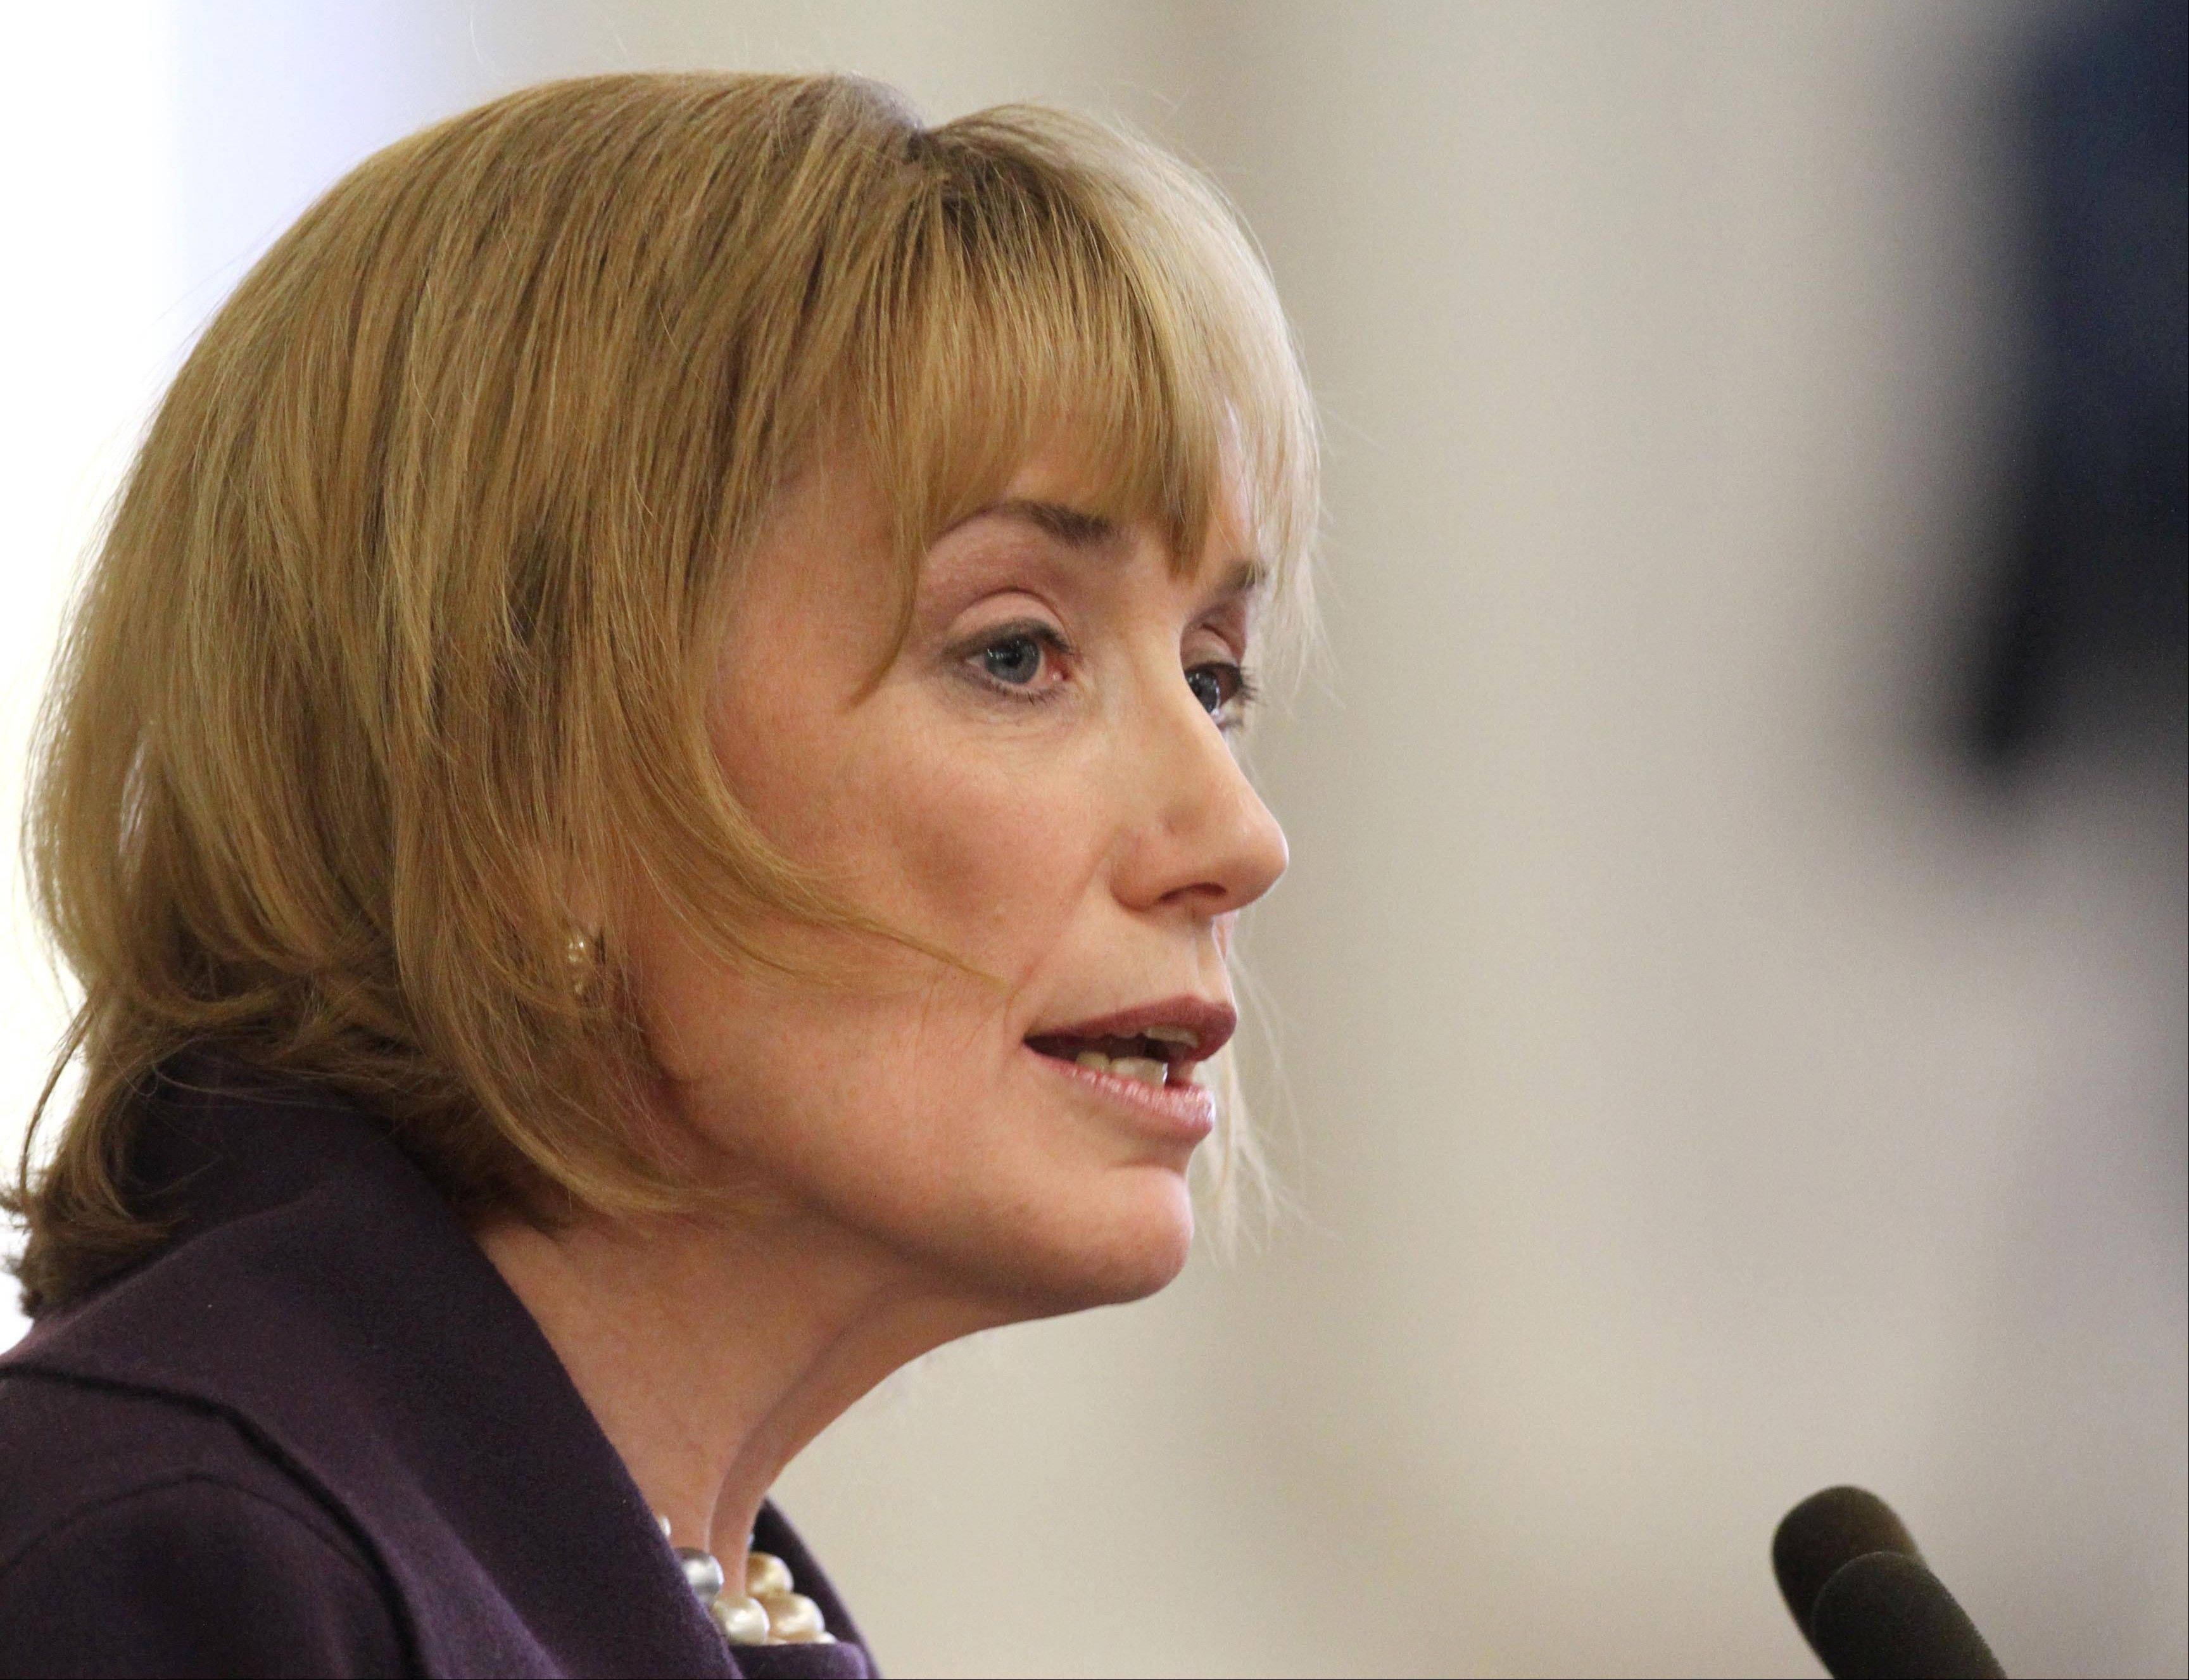 Democratic New Hampshire Gov. Maggie Hassan delivers her Budget Address to the Legislature at the Statehouse in Concord, N.H. Hassan is signing a bill Friday that emancipates 14 slaves who petitioned for their freedom in 1779.